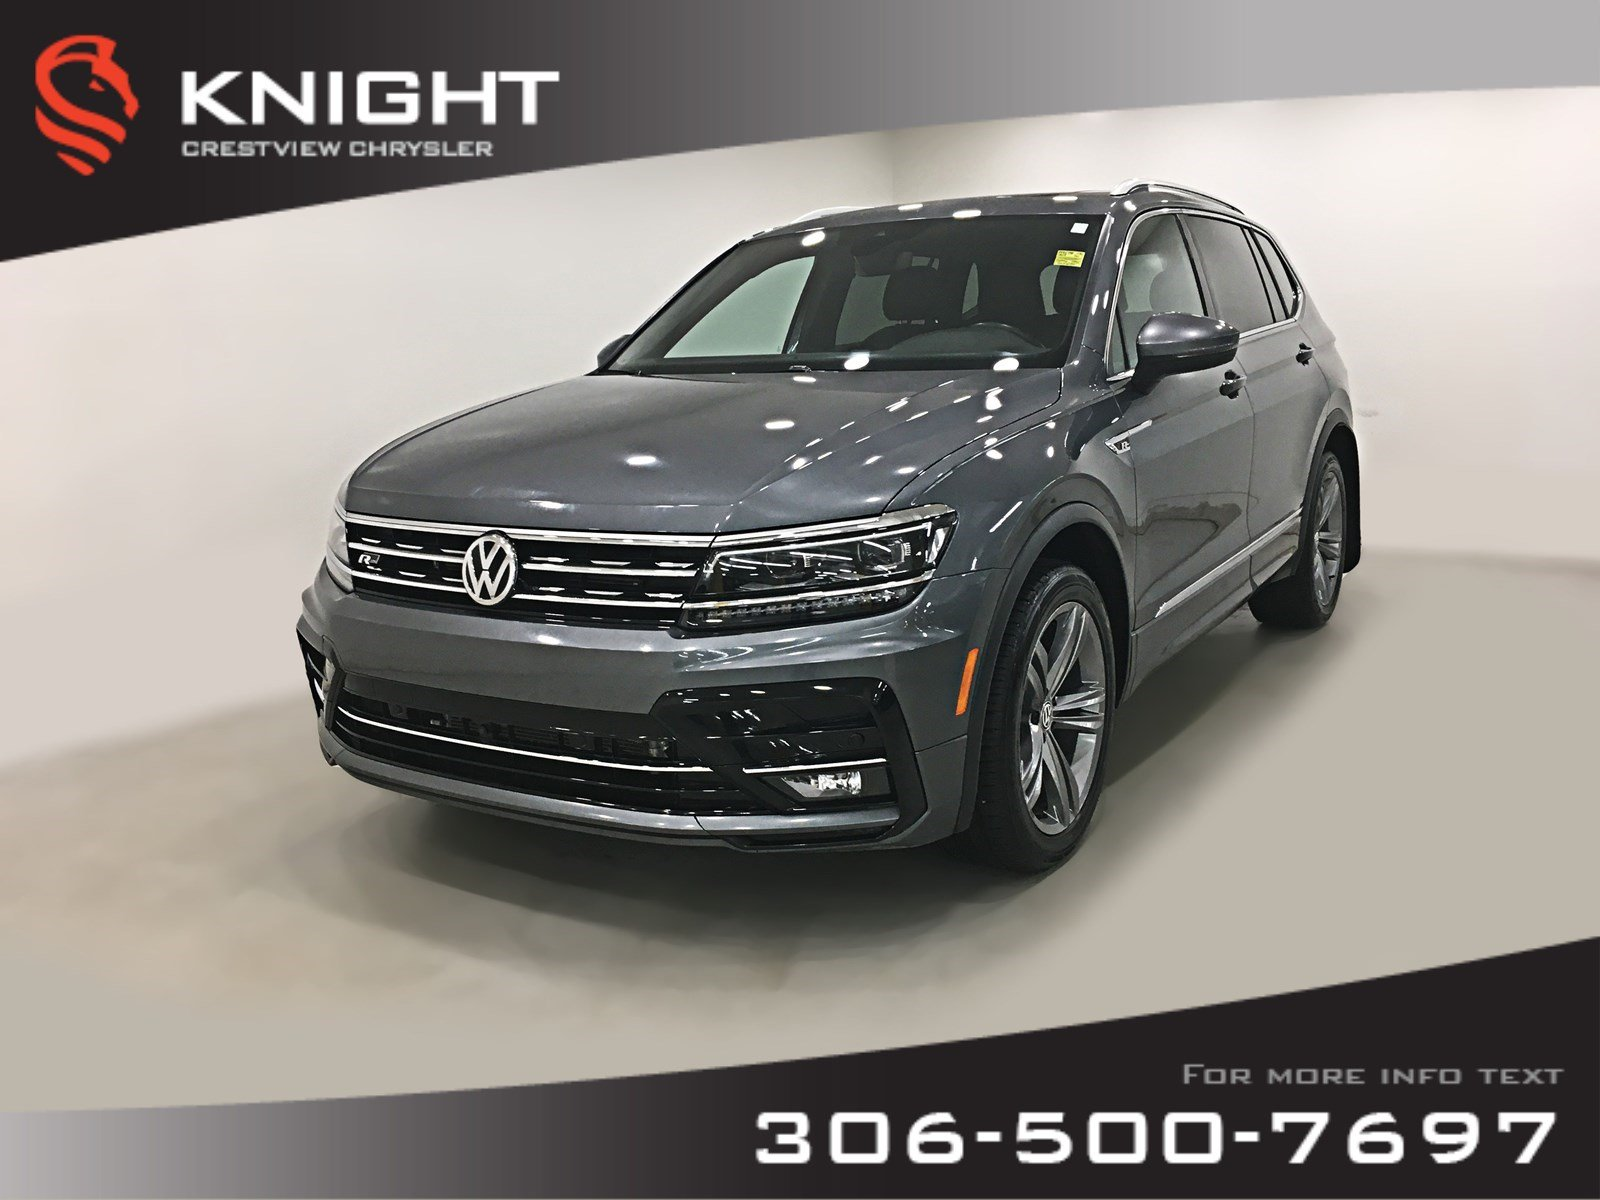 Certified Pre-Owned 2018 Volkswagen Tiguan Highline | Leather | Sunroof | Navigation